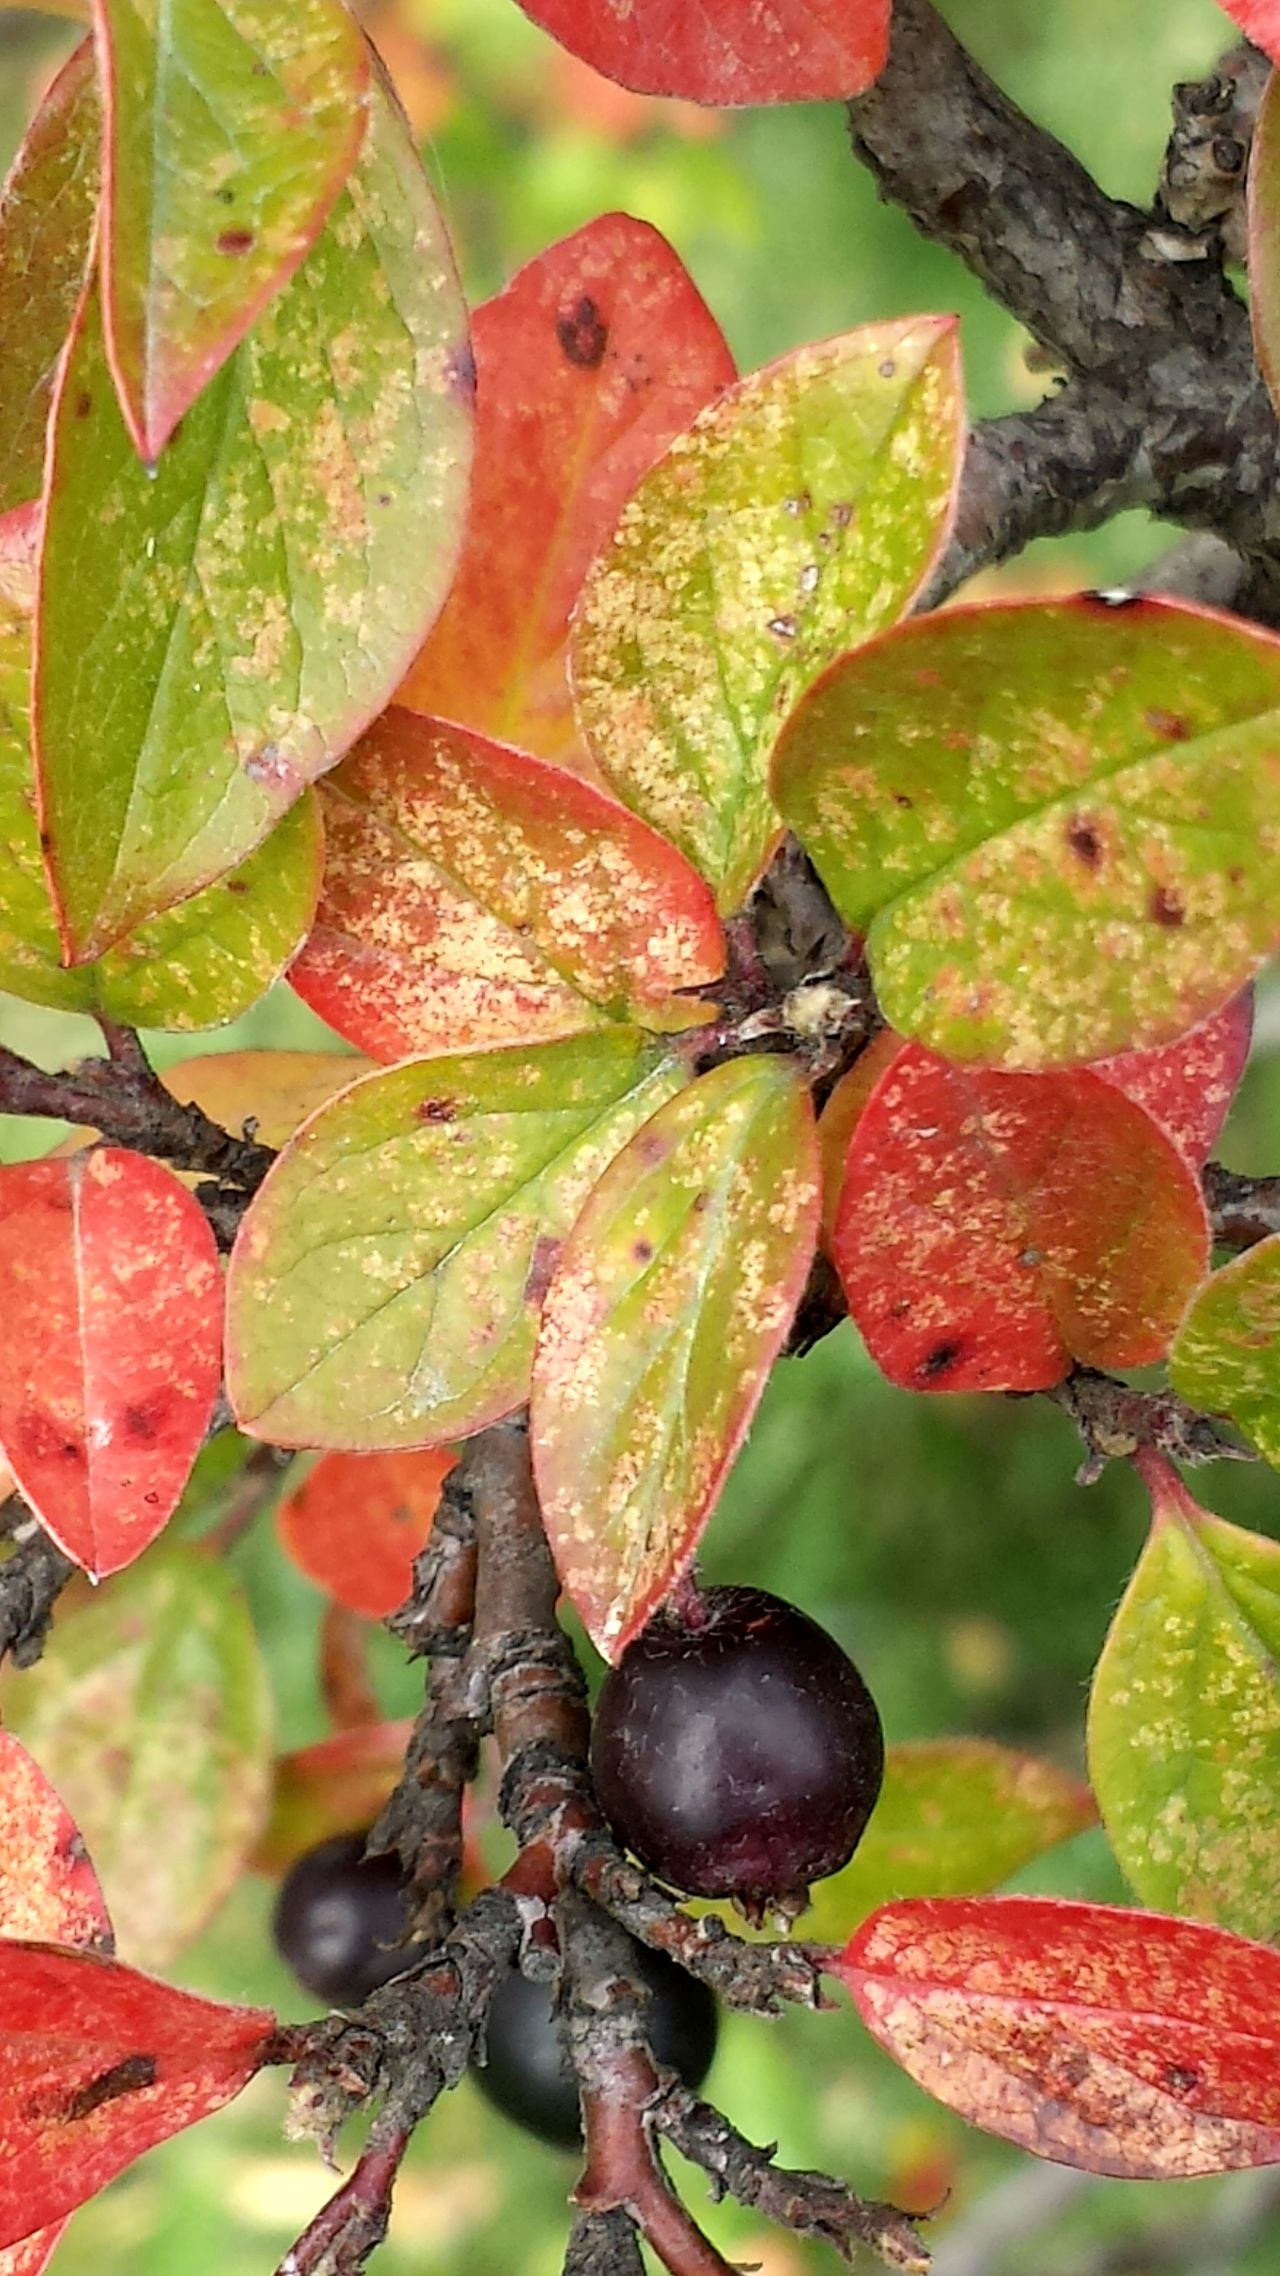 Agriculture Beauty In Nature Close-up Day Freshness Fruit Green Color Growth Leaf Nature No People Outdoors Red Tree